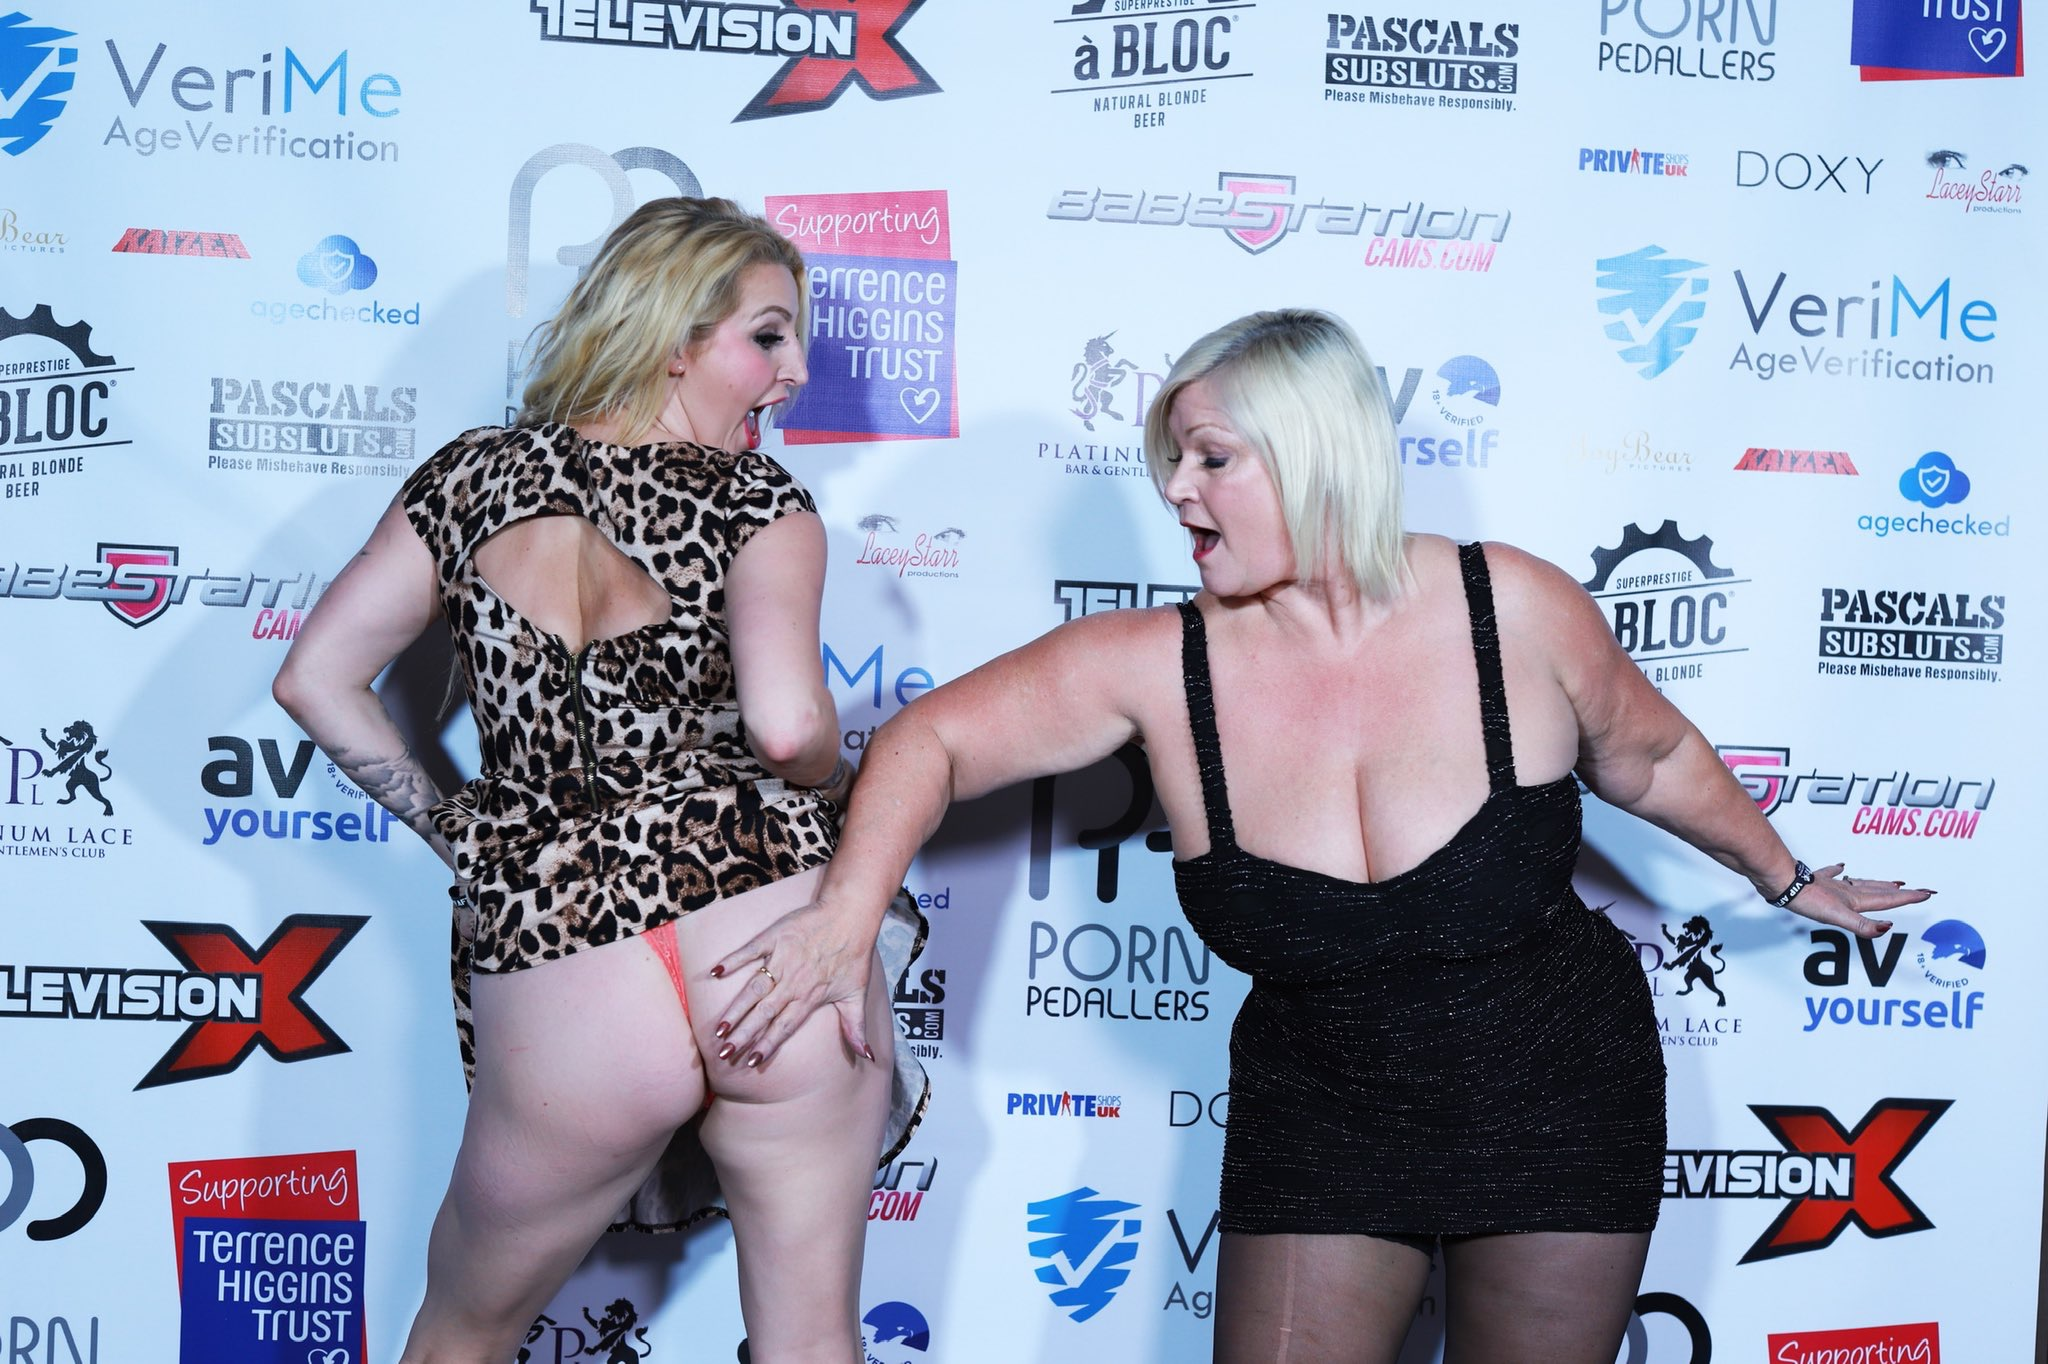 Lacey Starr and Loula Lou walk the red carpet